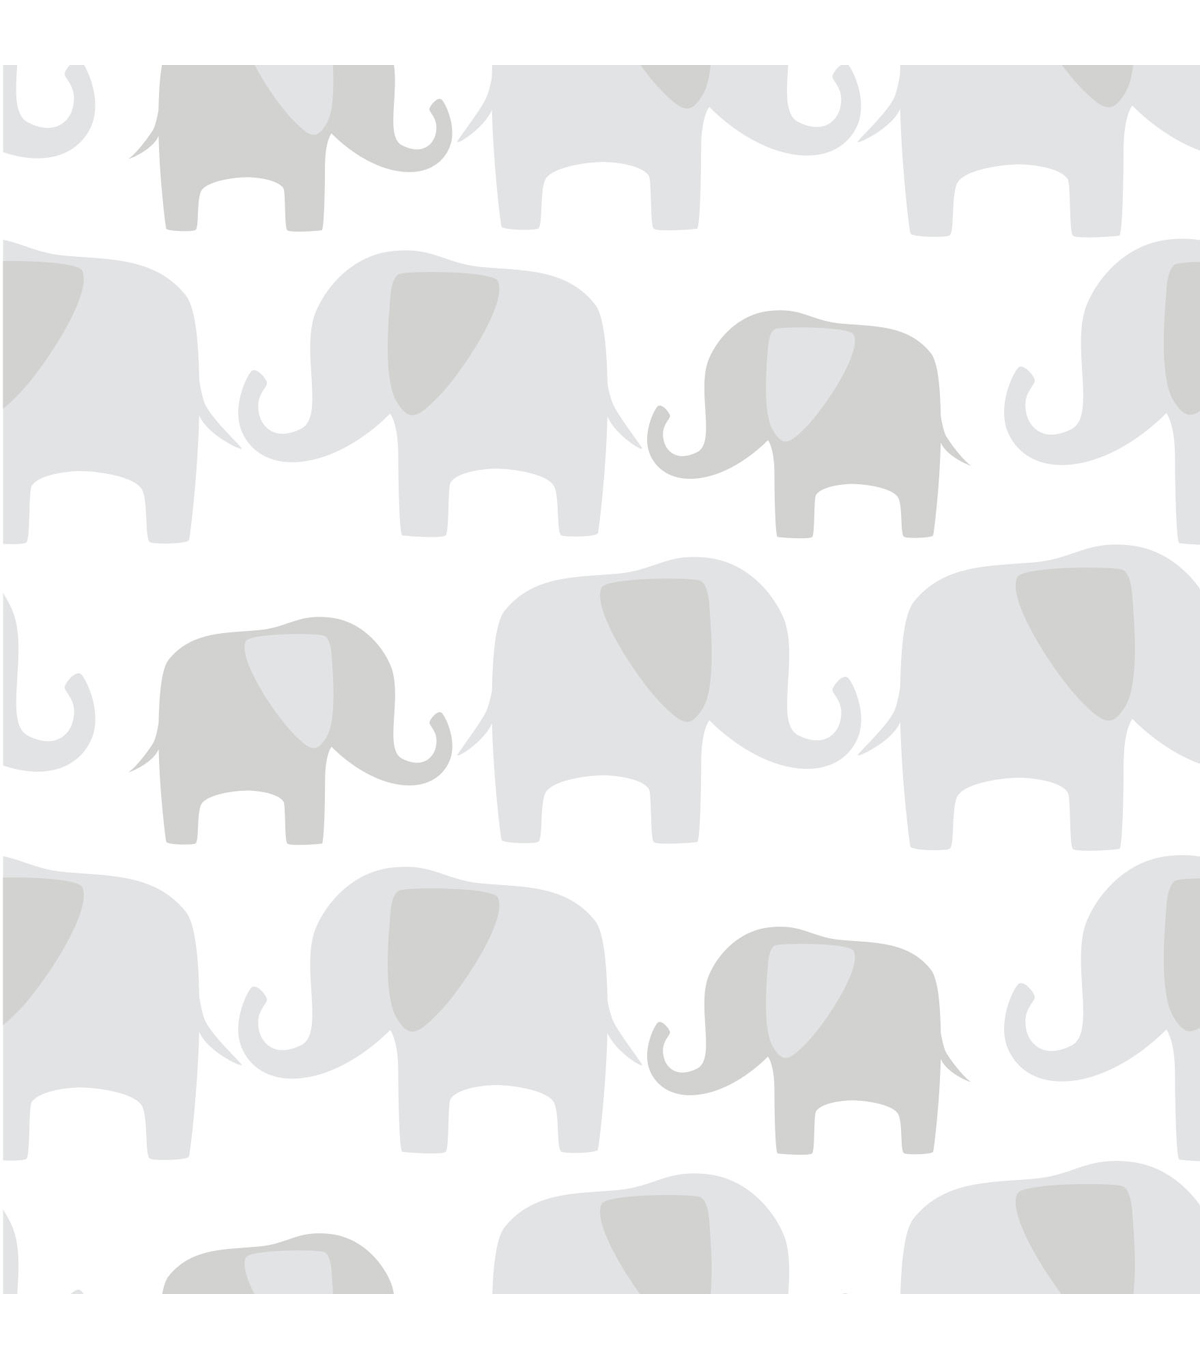 Elephant Wallpaper L Stick